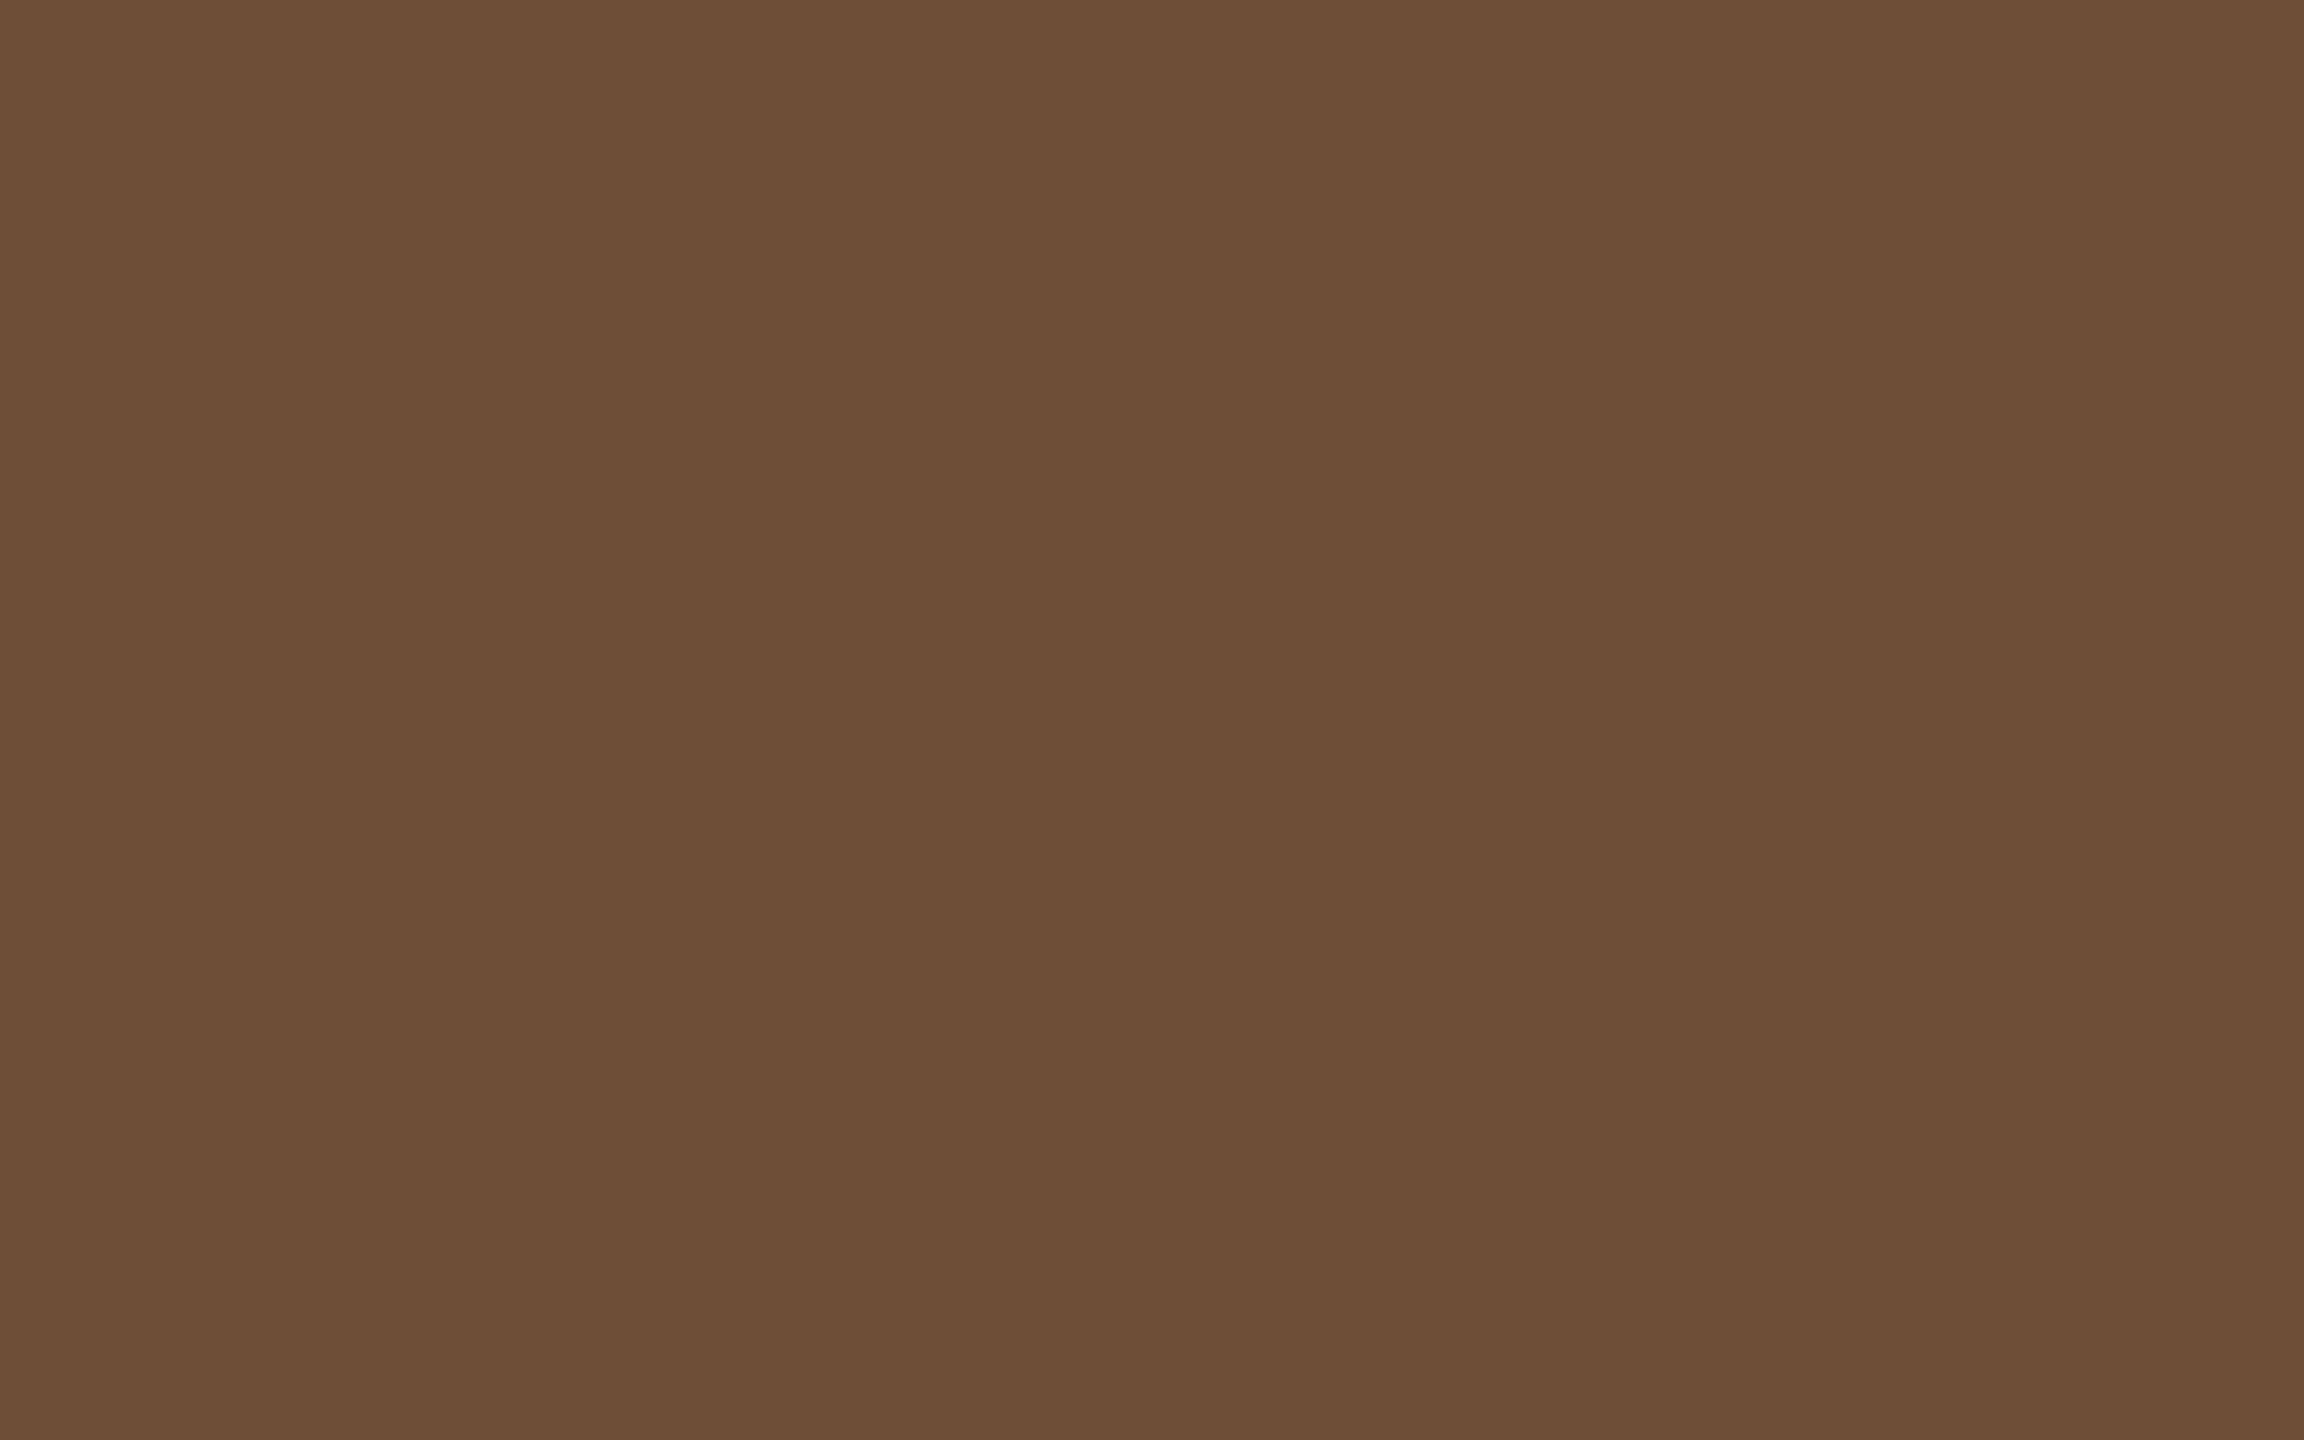 2304x1440 Tuscan Brown Solid Color Background